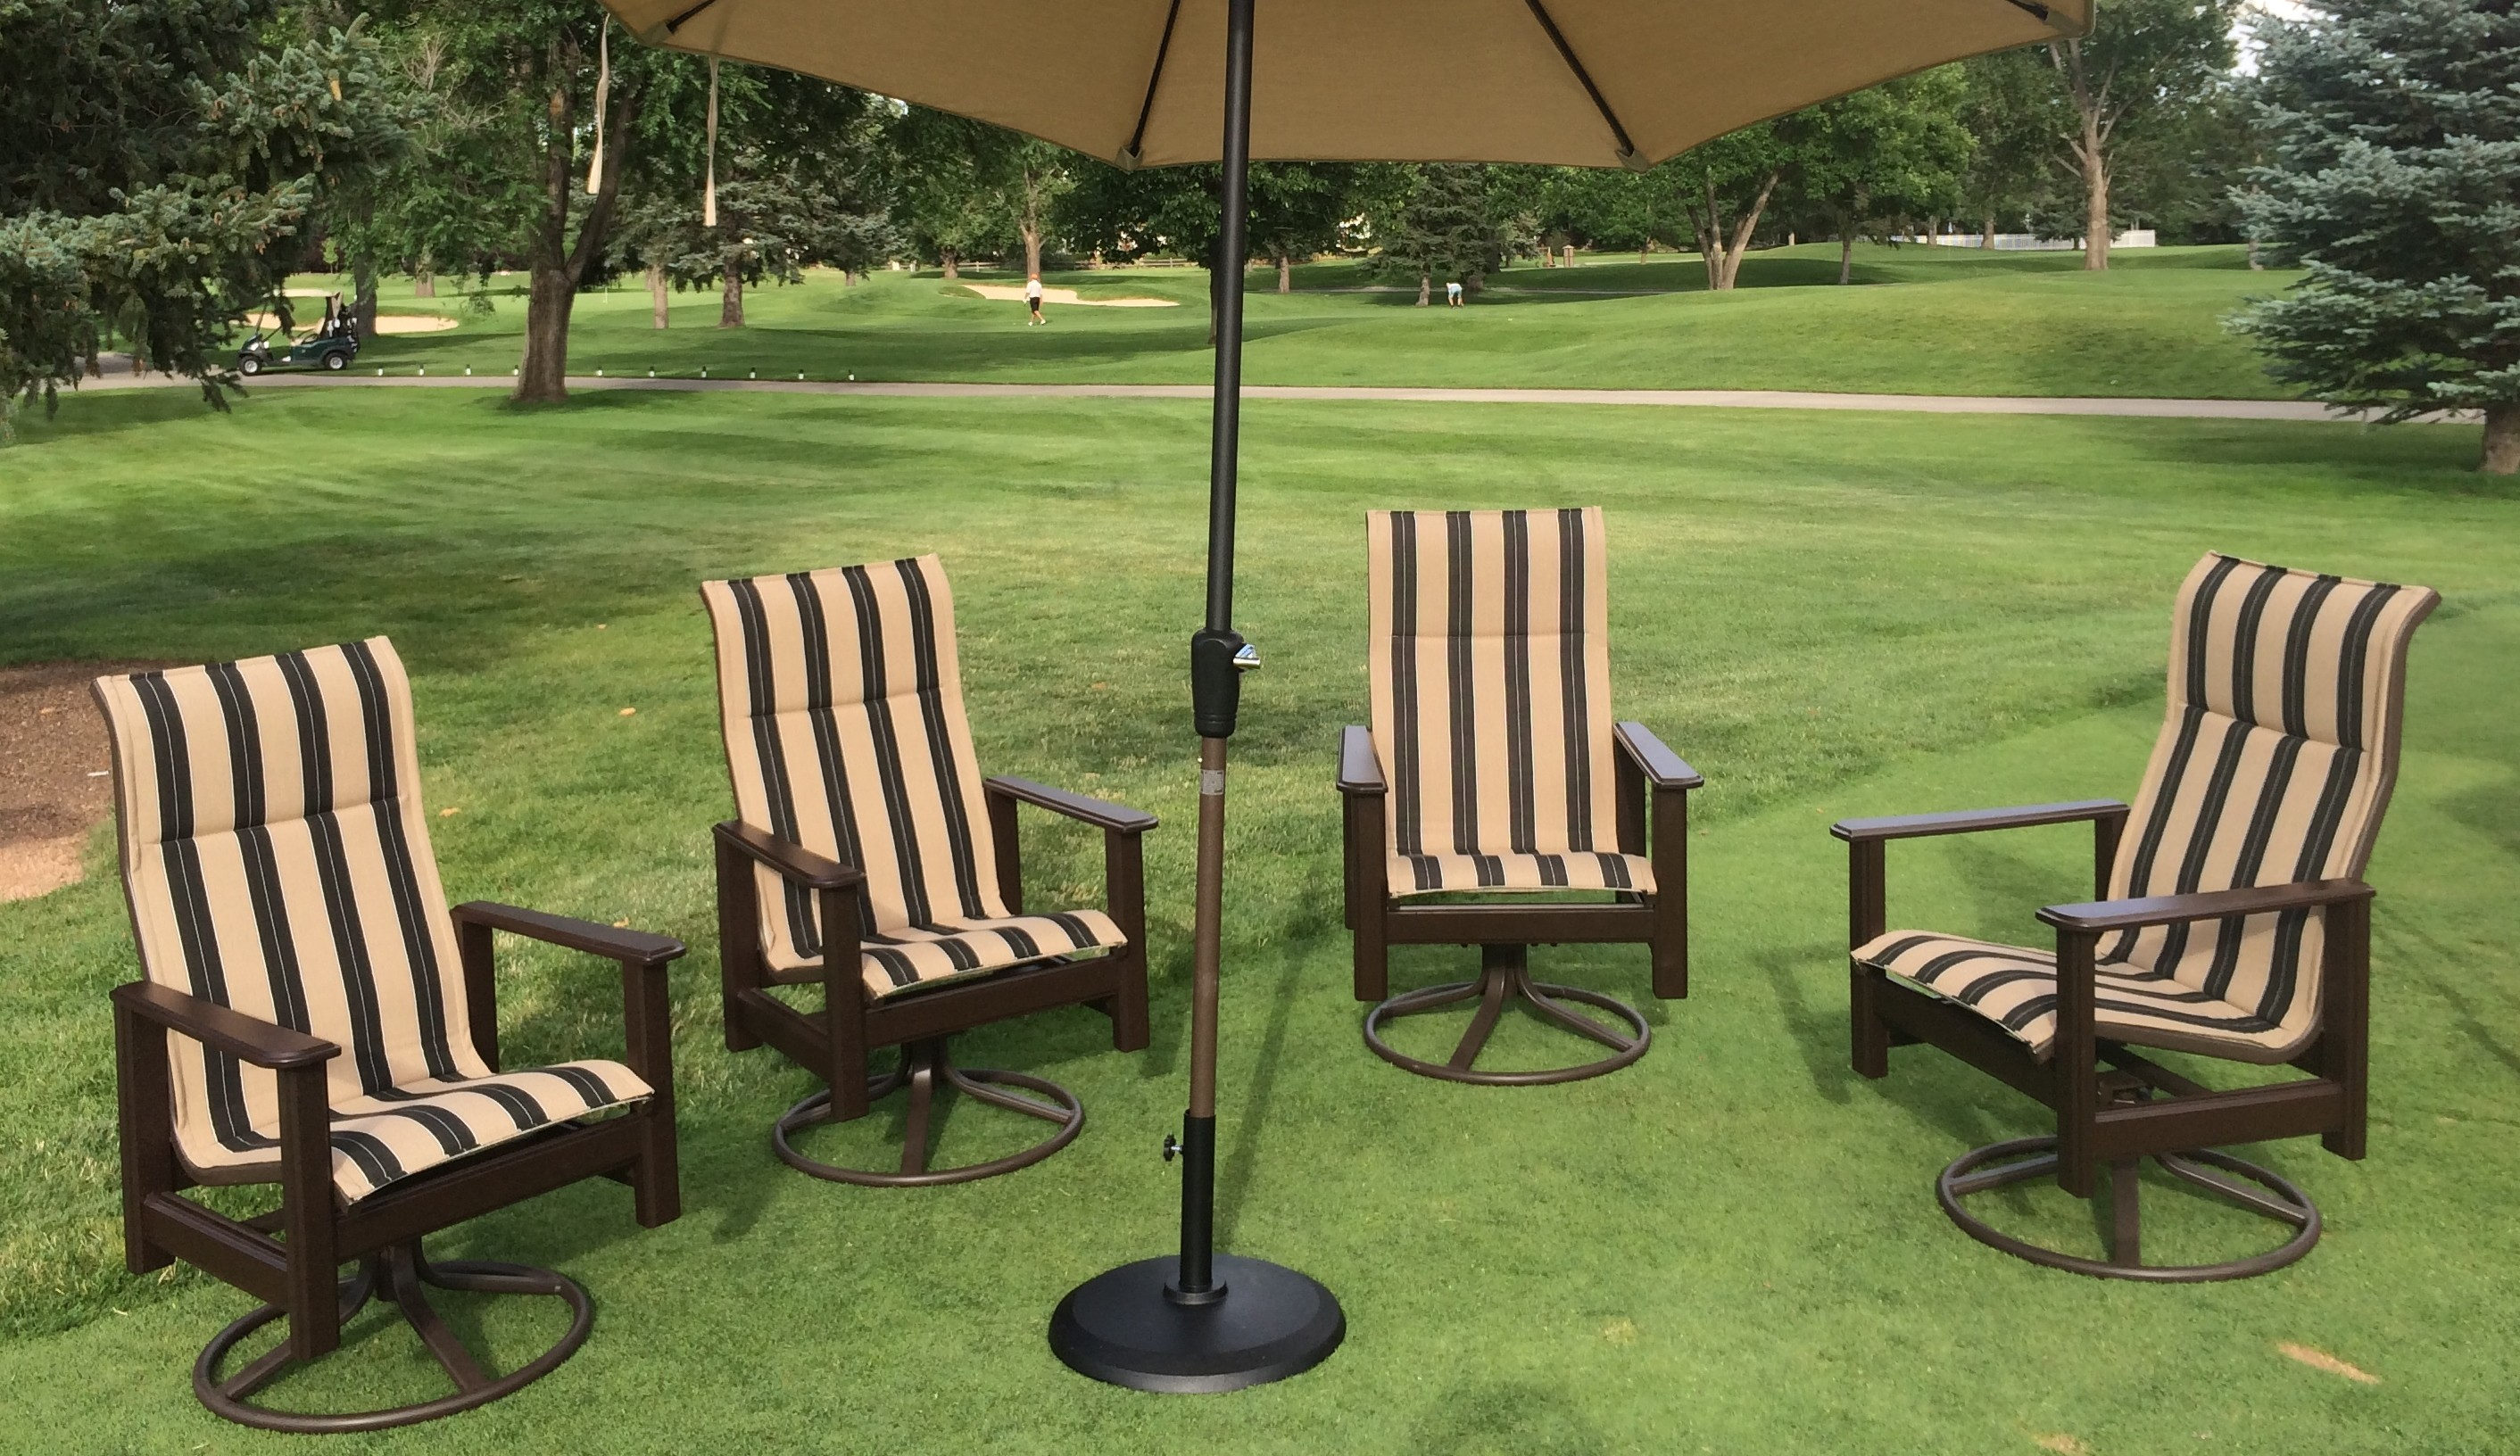 High Back Outdoor Swivel Rocker Outdoor Swivel Rocking Chair intended for measurements 2824 X 1632